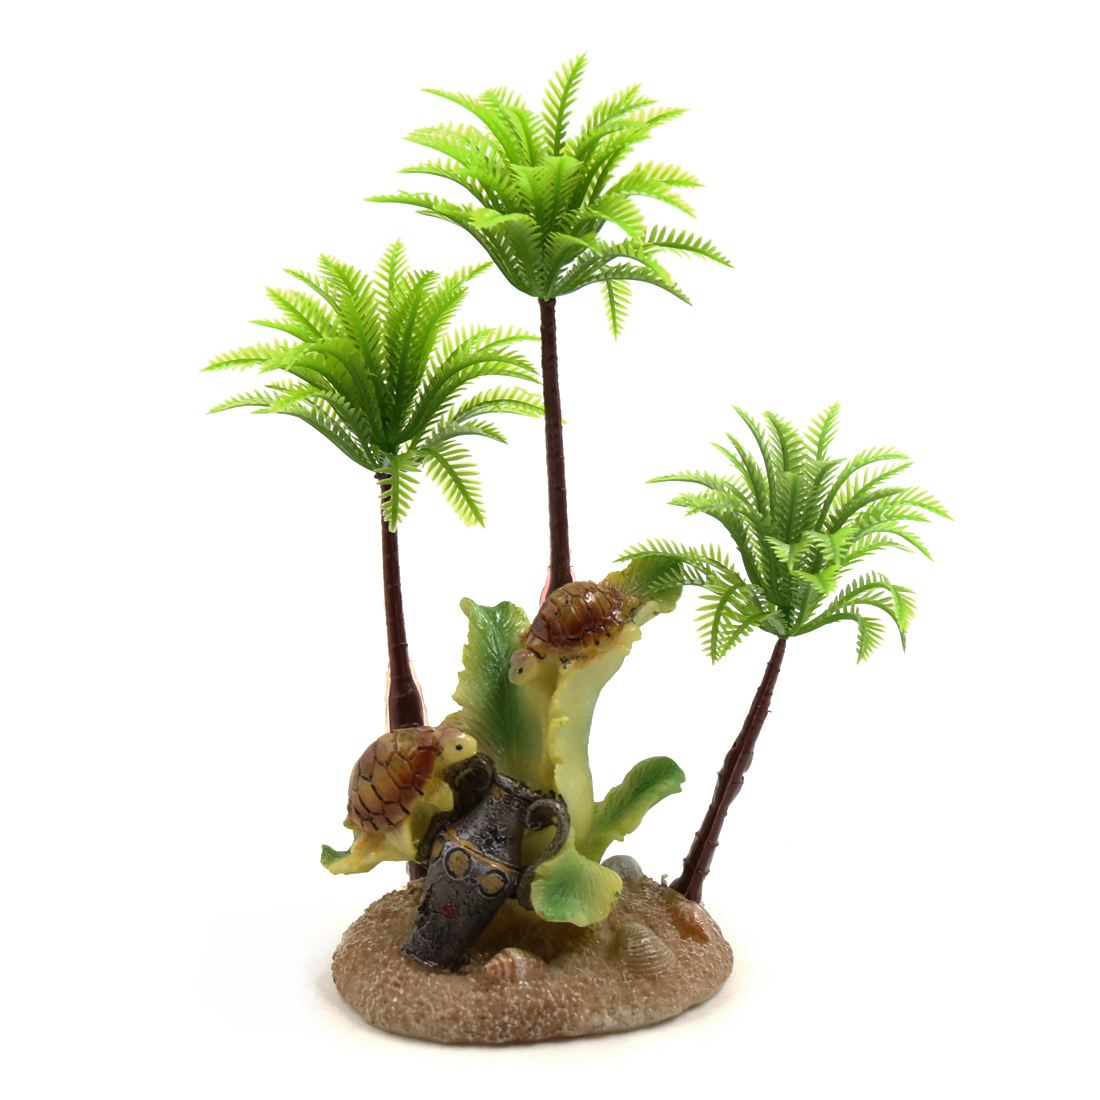 Plastic Decorative Tree Terrarium Plant Ornament for Reptiles Amphibians